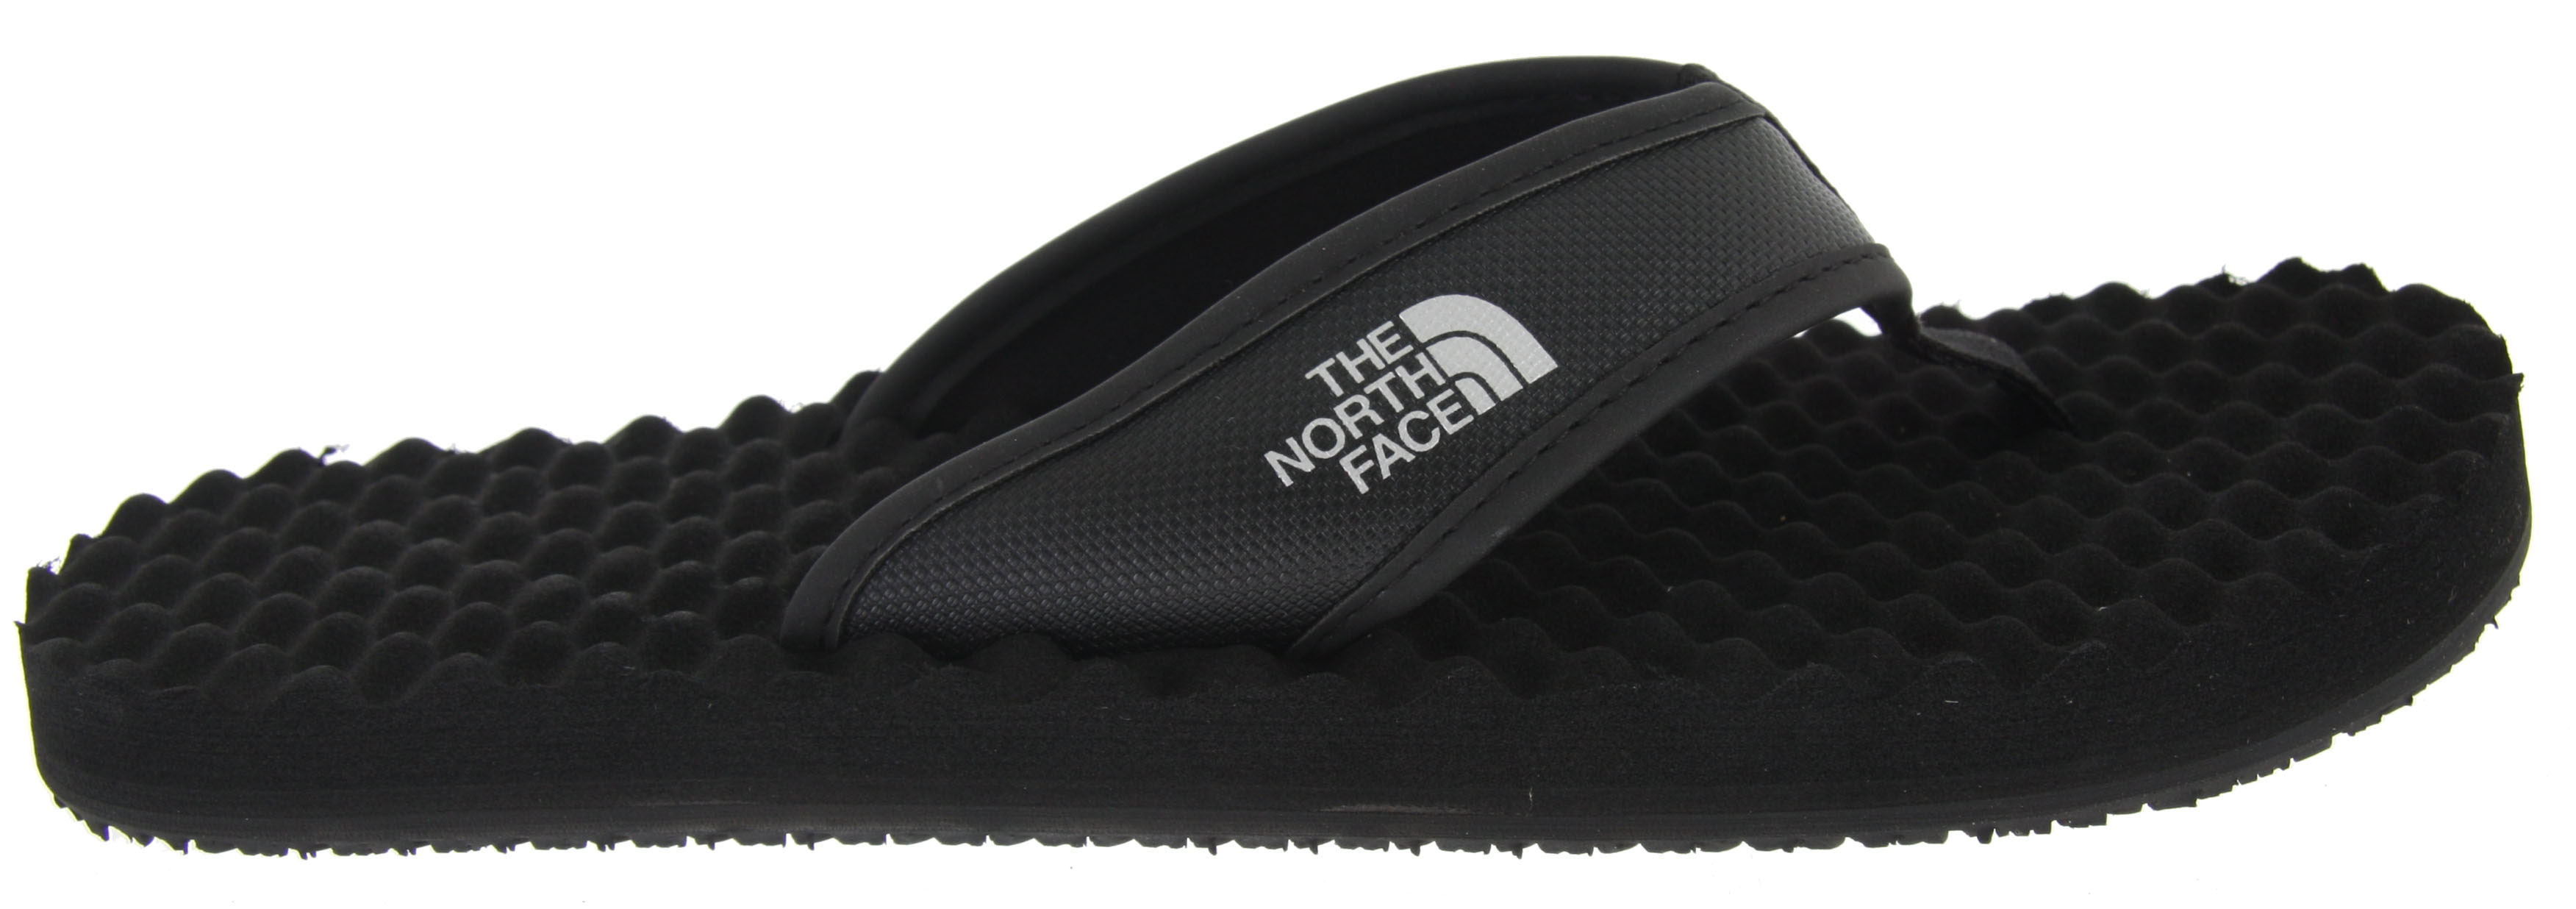 Camp and Hike Classic, rugged style inspired by their hyper-durable expedition equipment, The North Face Base Camp supportive sandal is comfortable and resilient for loads of use.Key Features of The North Face Base Camp Sandals: PVC-free, PU-coated synthetic strap with soft PU binding and jersey lining upper Extra-cushy, egg-crate-inspired EVA footbed with anatomical arch support Rubber outsole - $23.95